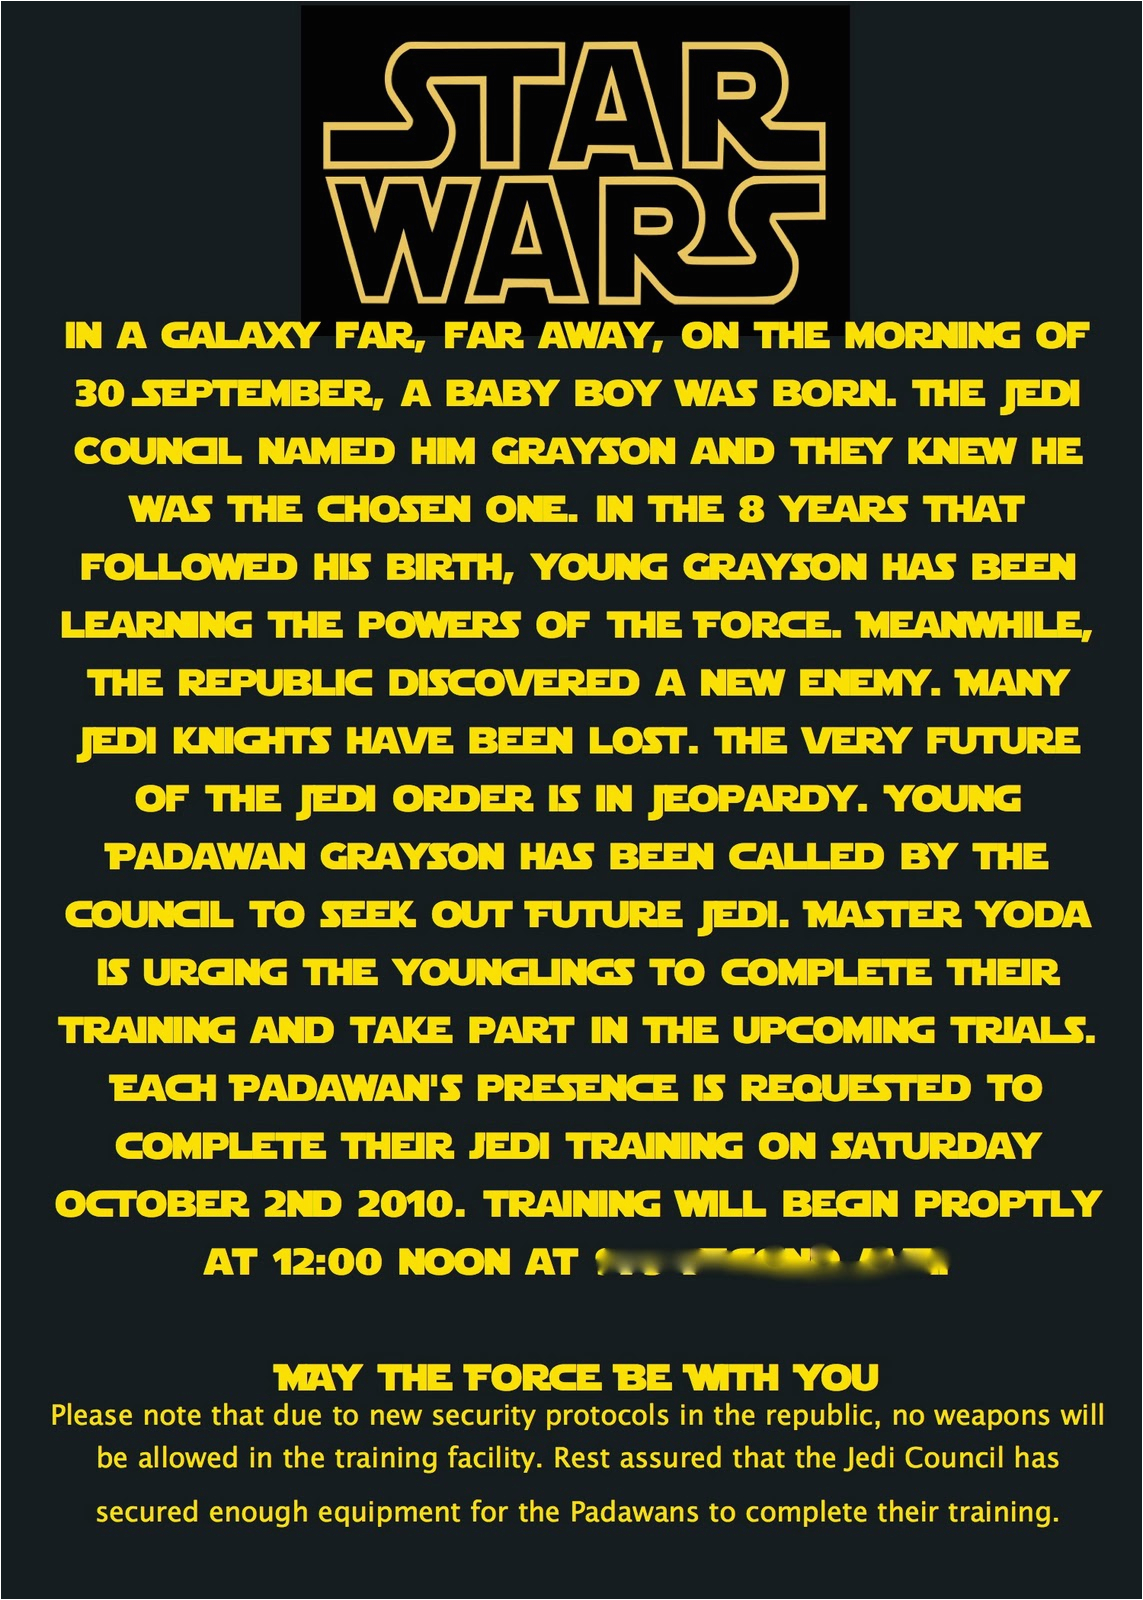 Star Wars Birthday Invitation Wording at Second Street Star Wars Party What I Did